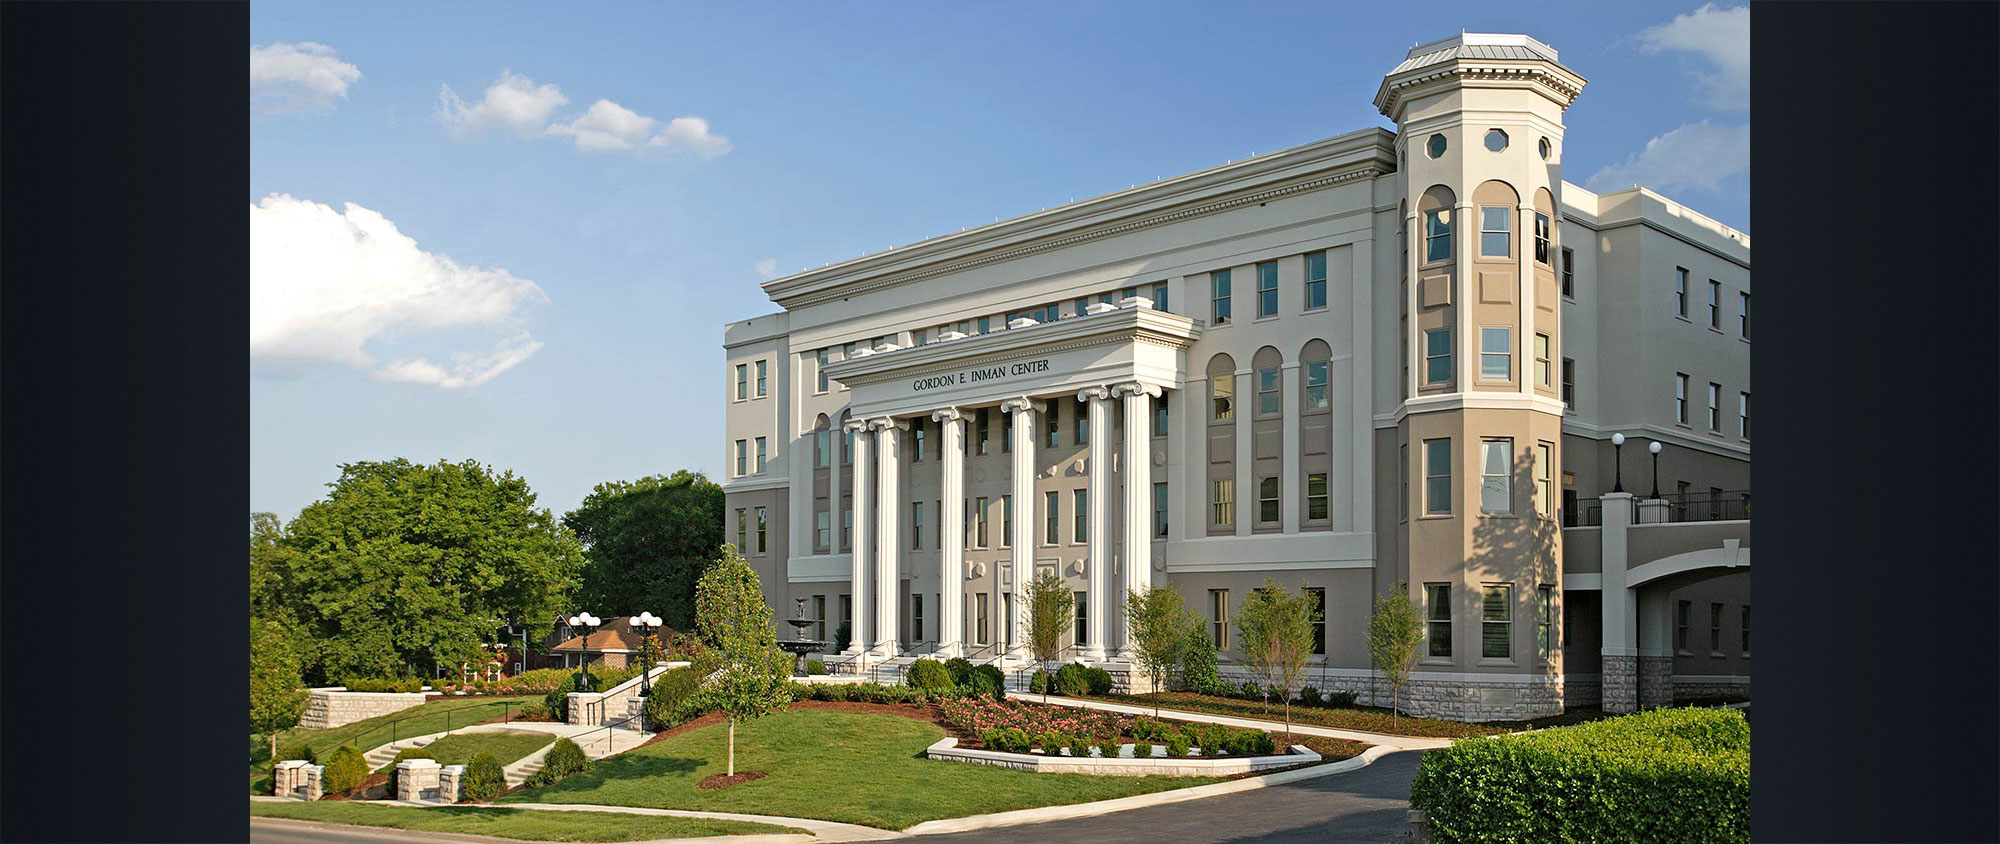 Belmont University Gordon E. Inman Center – College of Health Sciences & Nursing